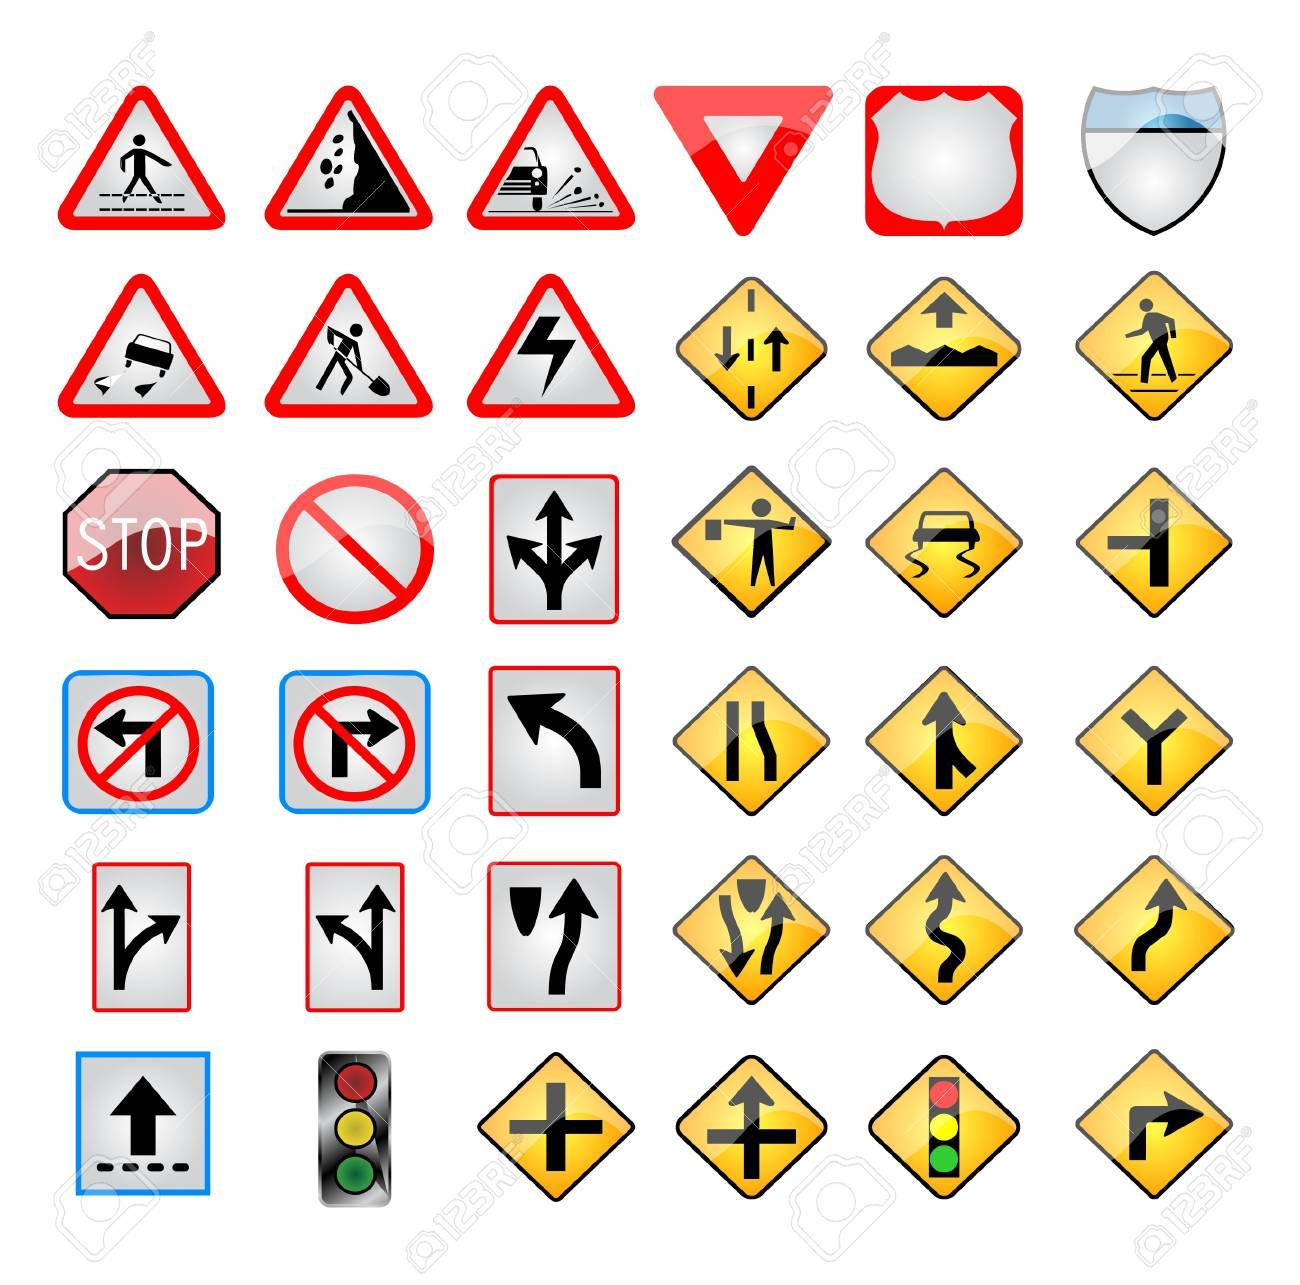 Trafic signs Stock Vector - 20659793